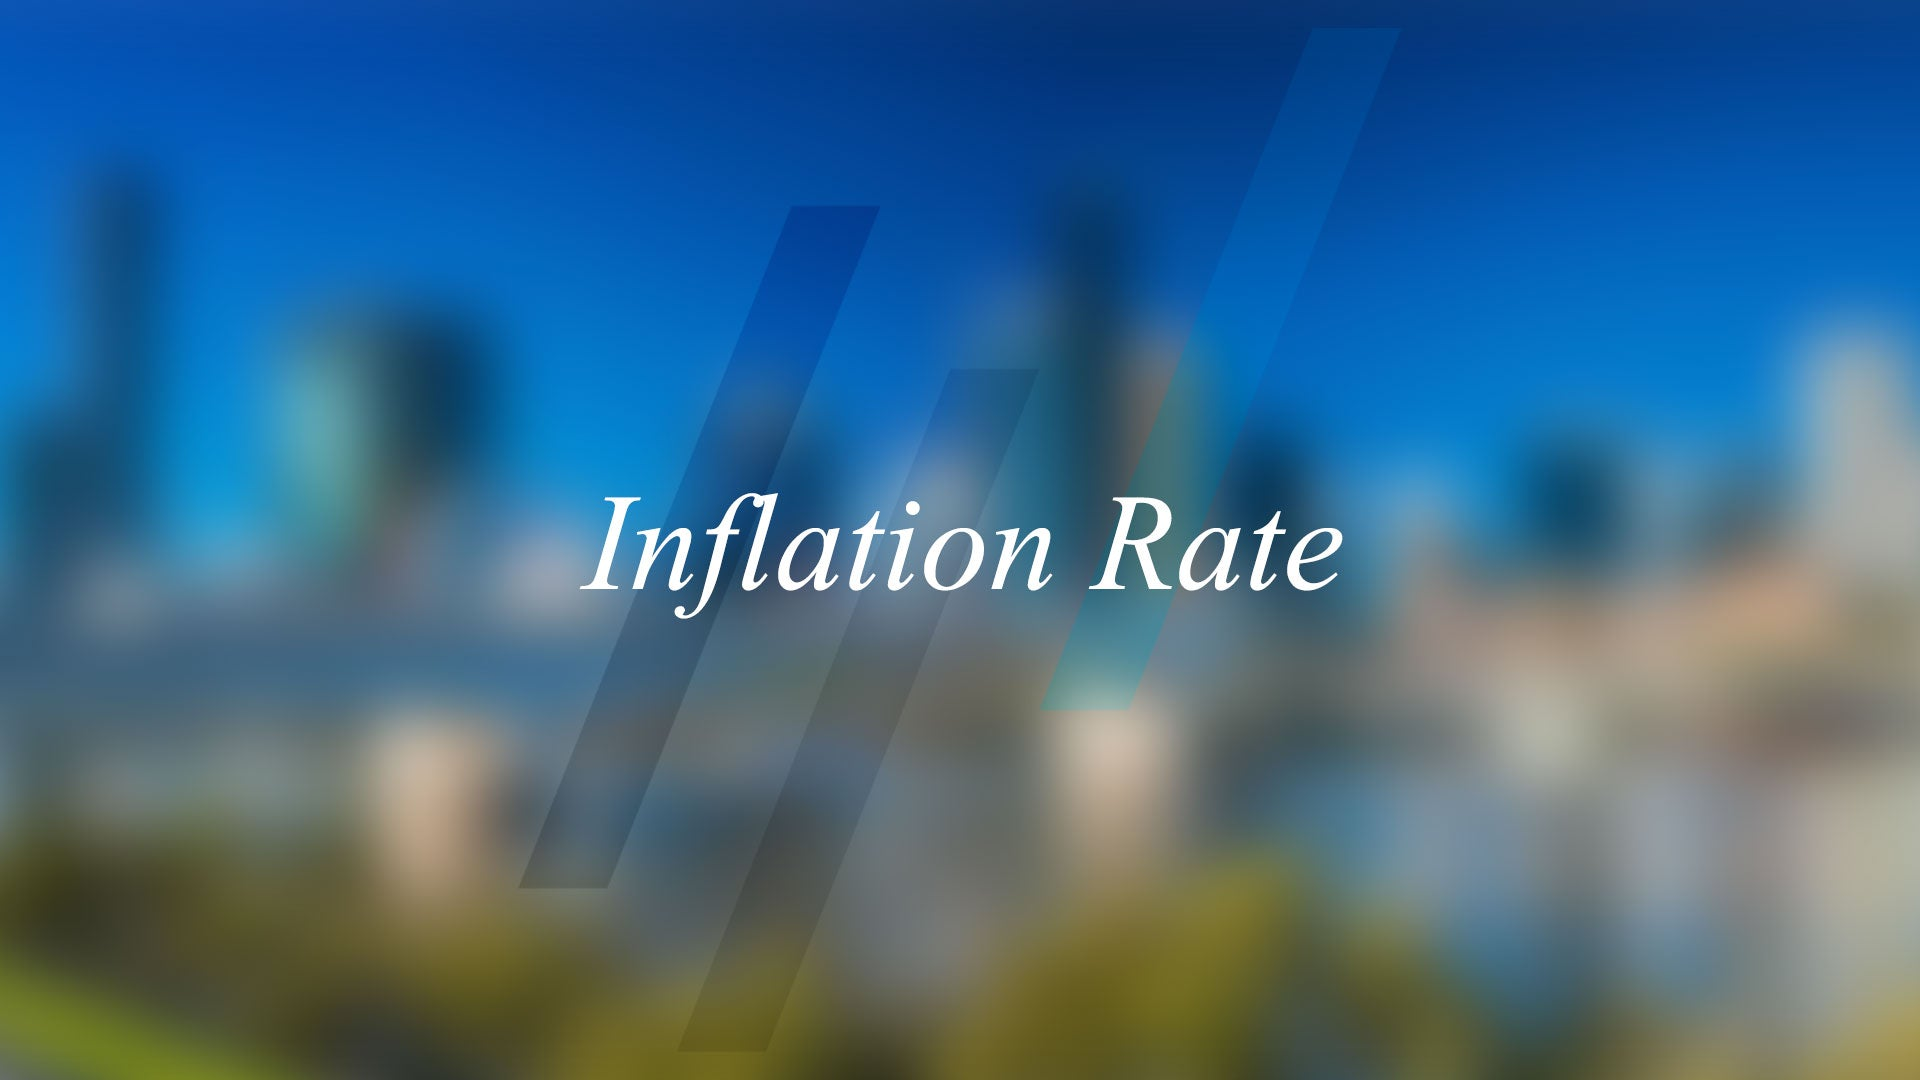 What is the Inflation Rate?